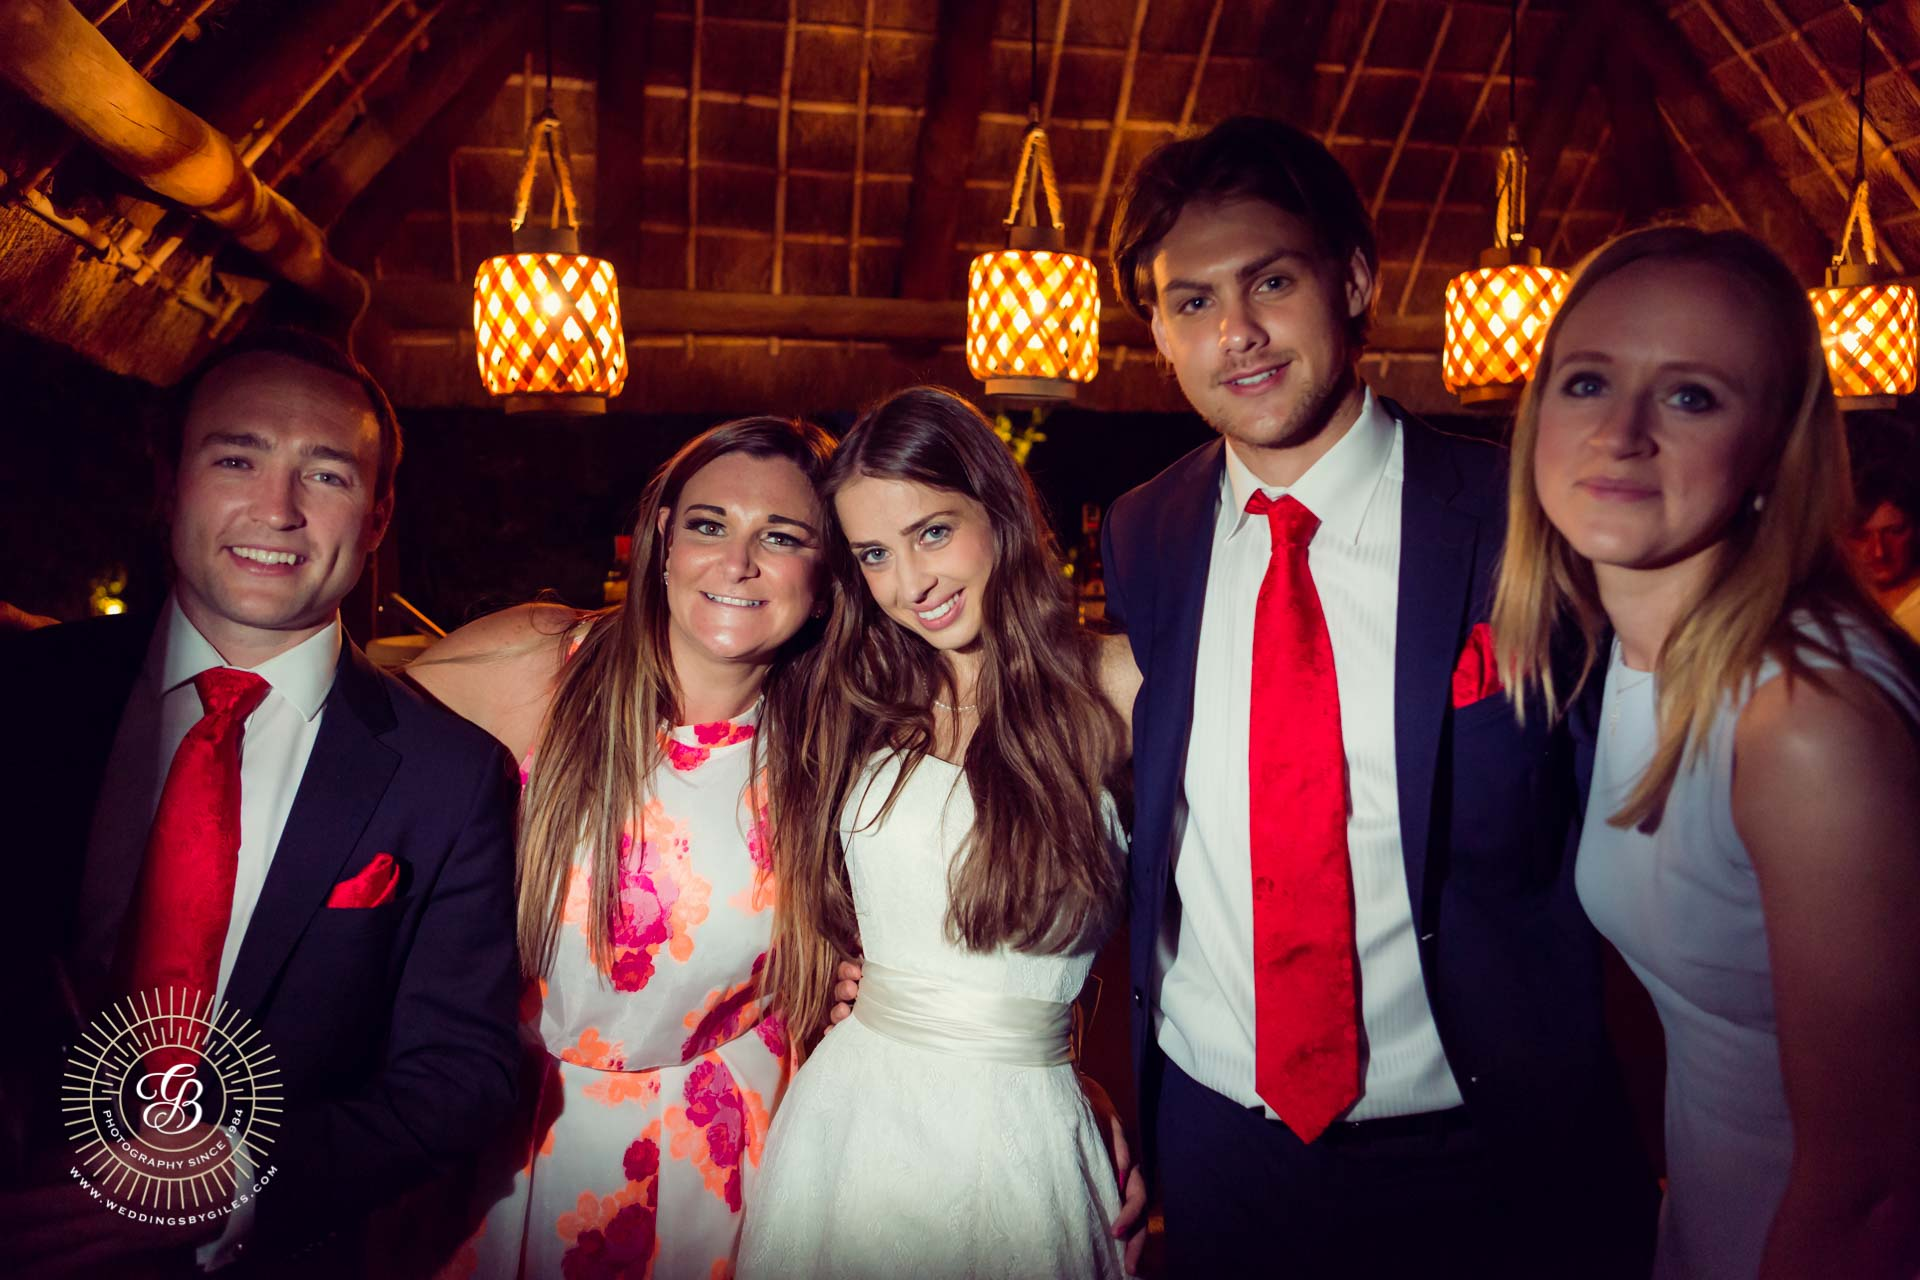 wedding guests with the bride